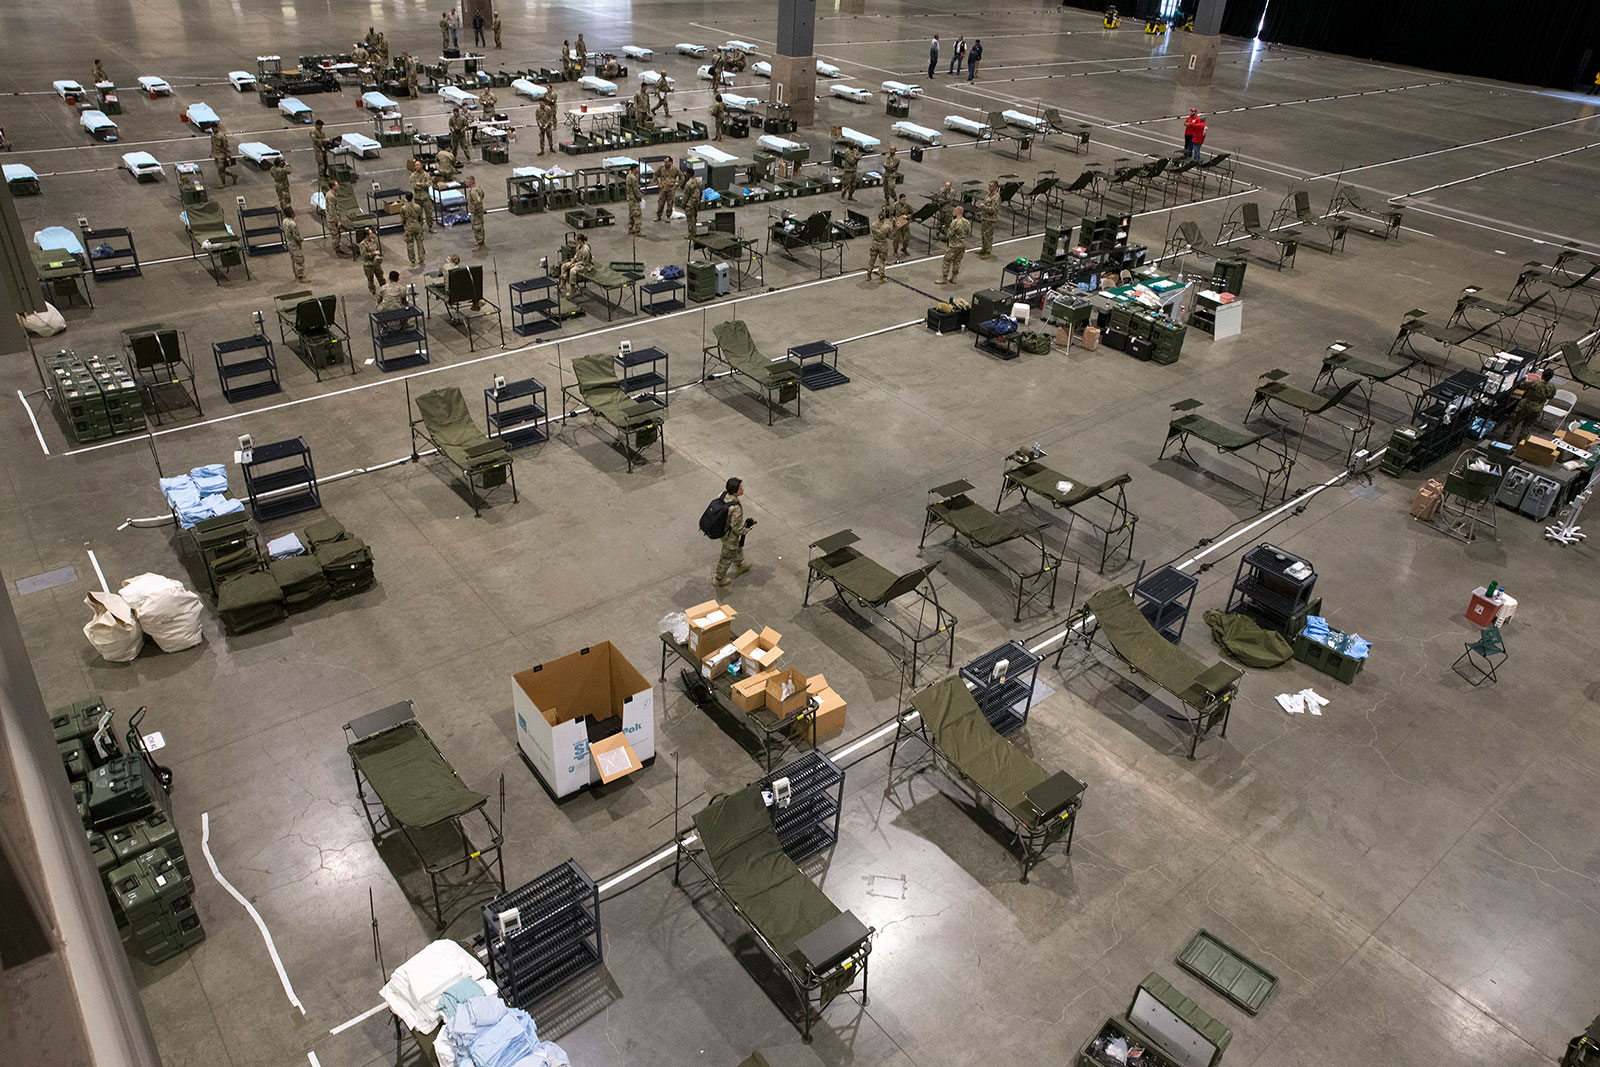 Military personnel set up a field hospital at CenturyLink Event Center on March 31.